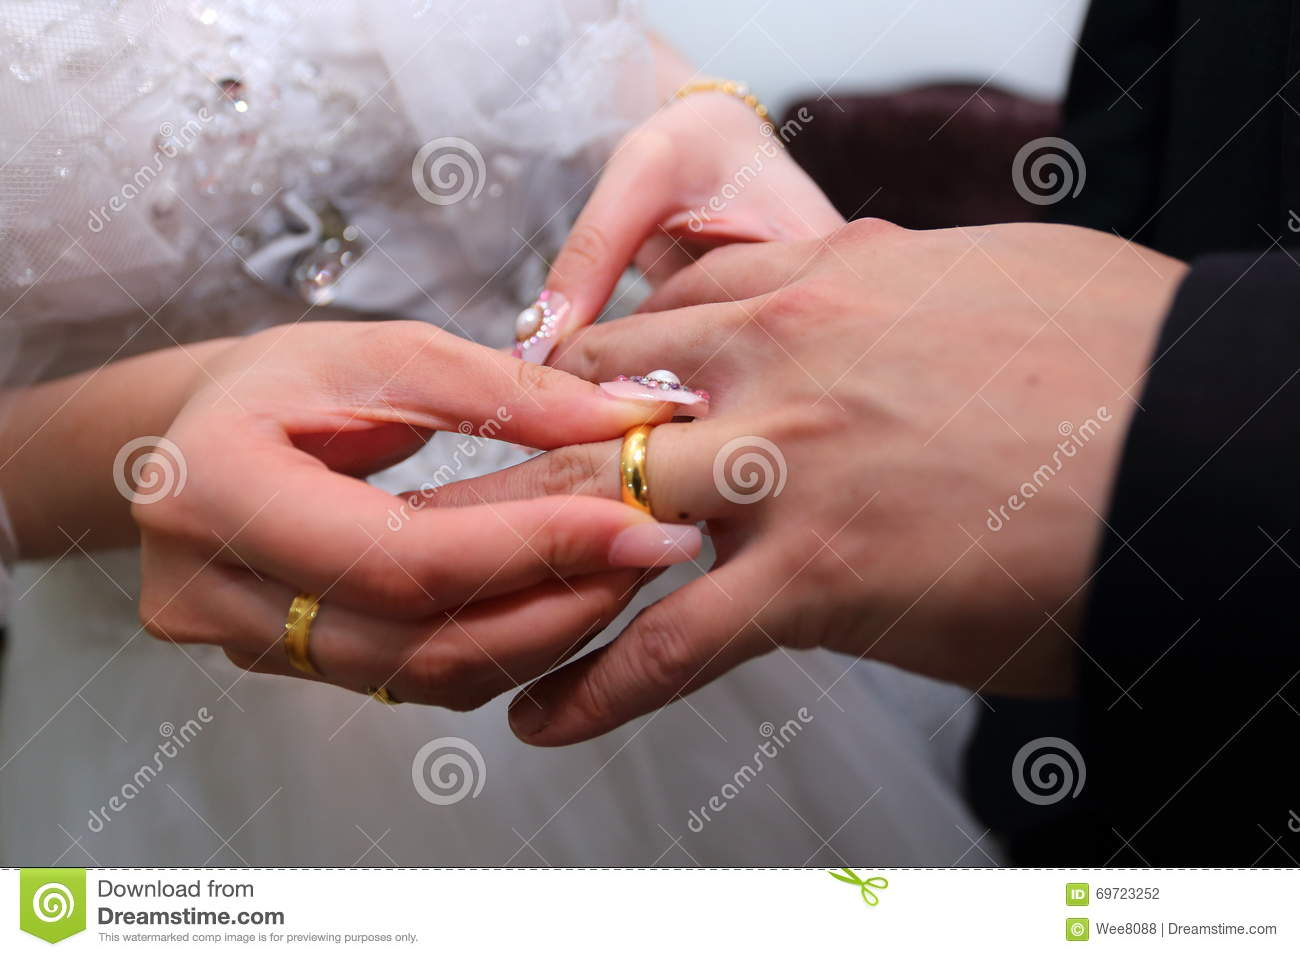 Wedding rings exchange stock photo. Image of romantic - 69723252